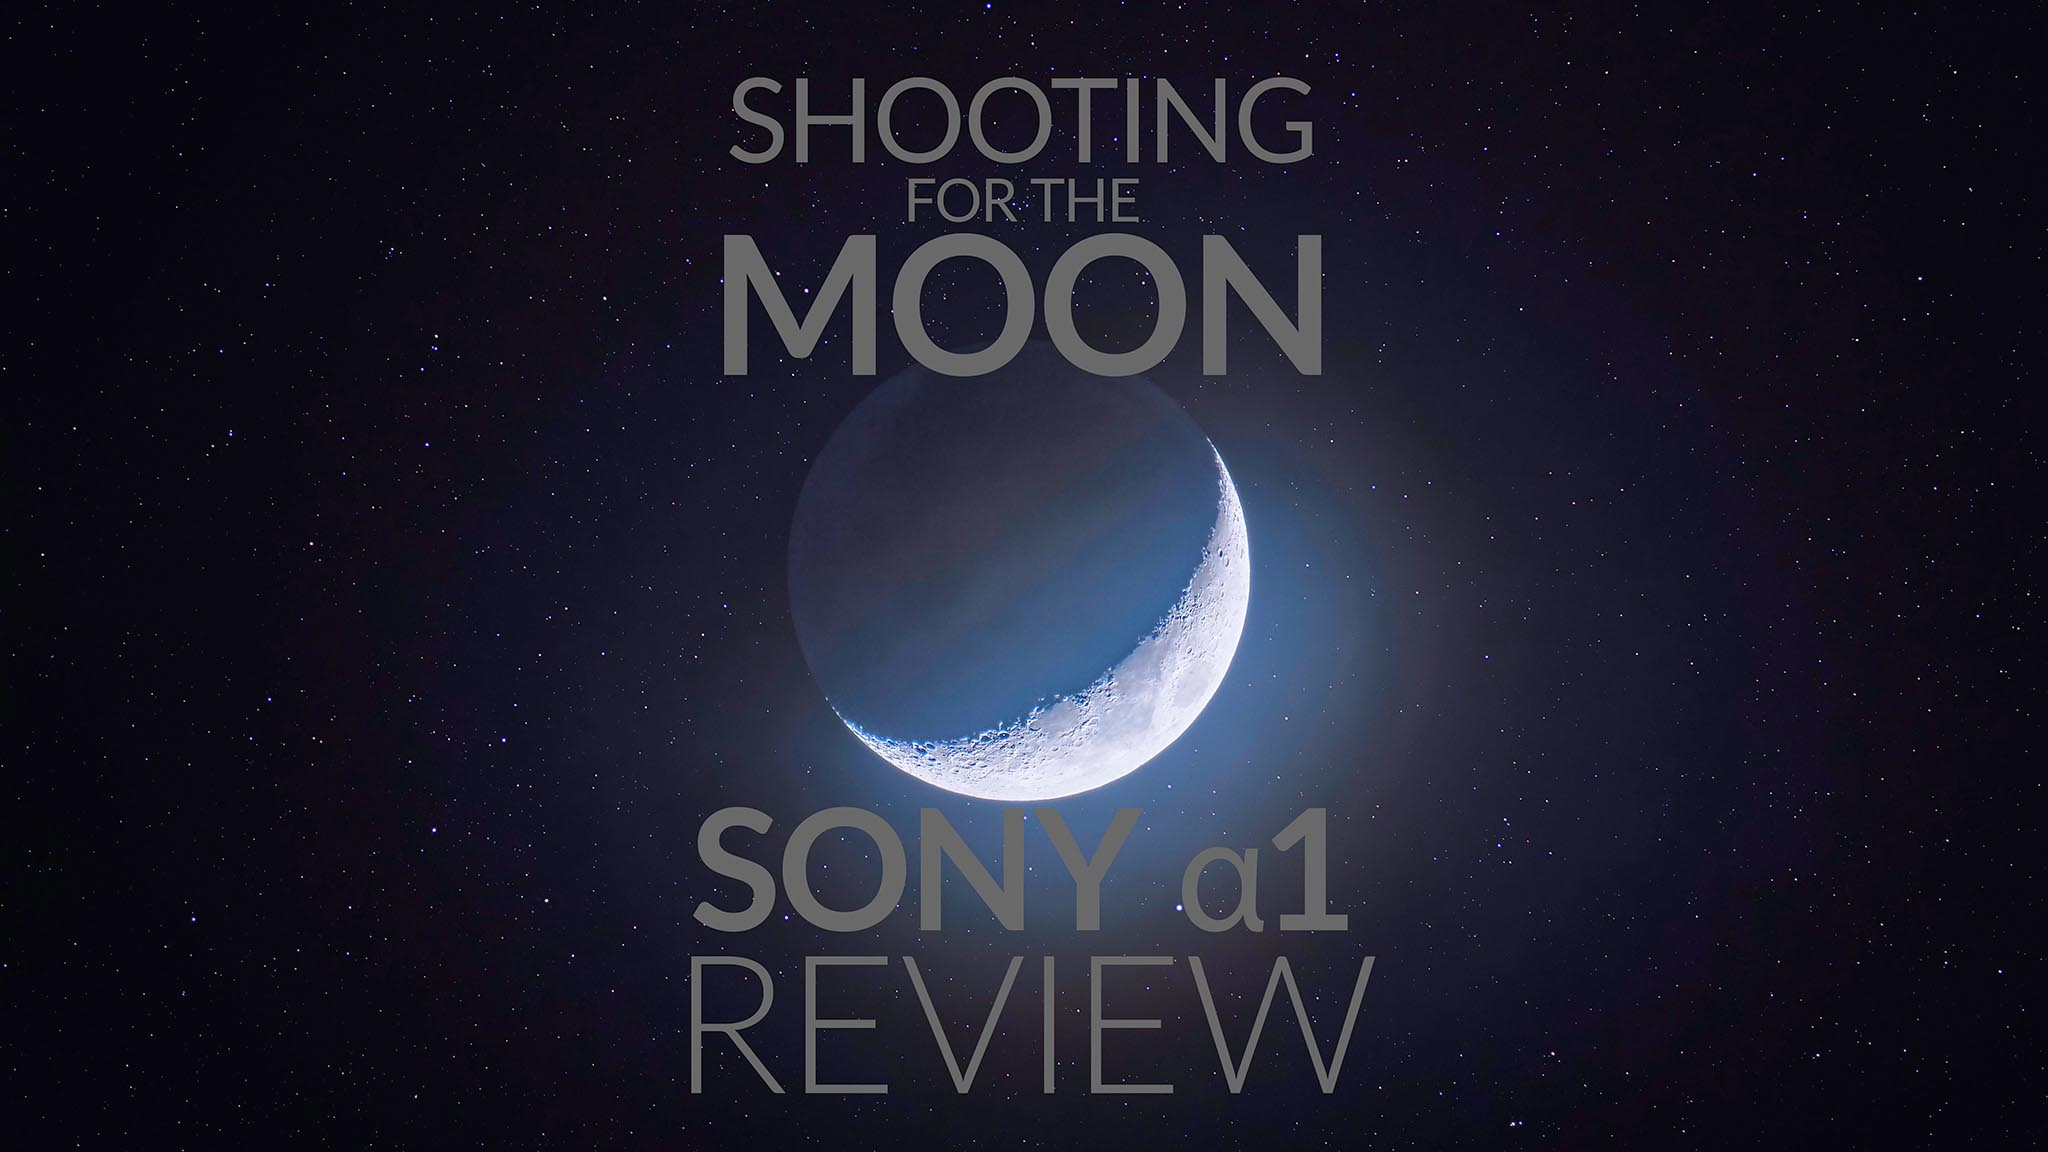 Shooting for the Moon with the Sony a1